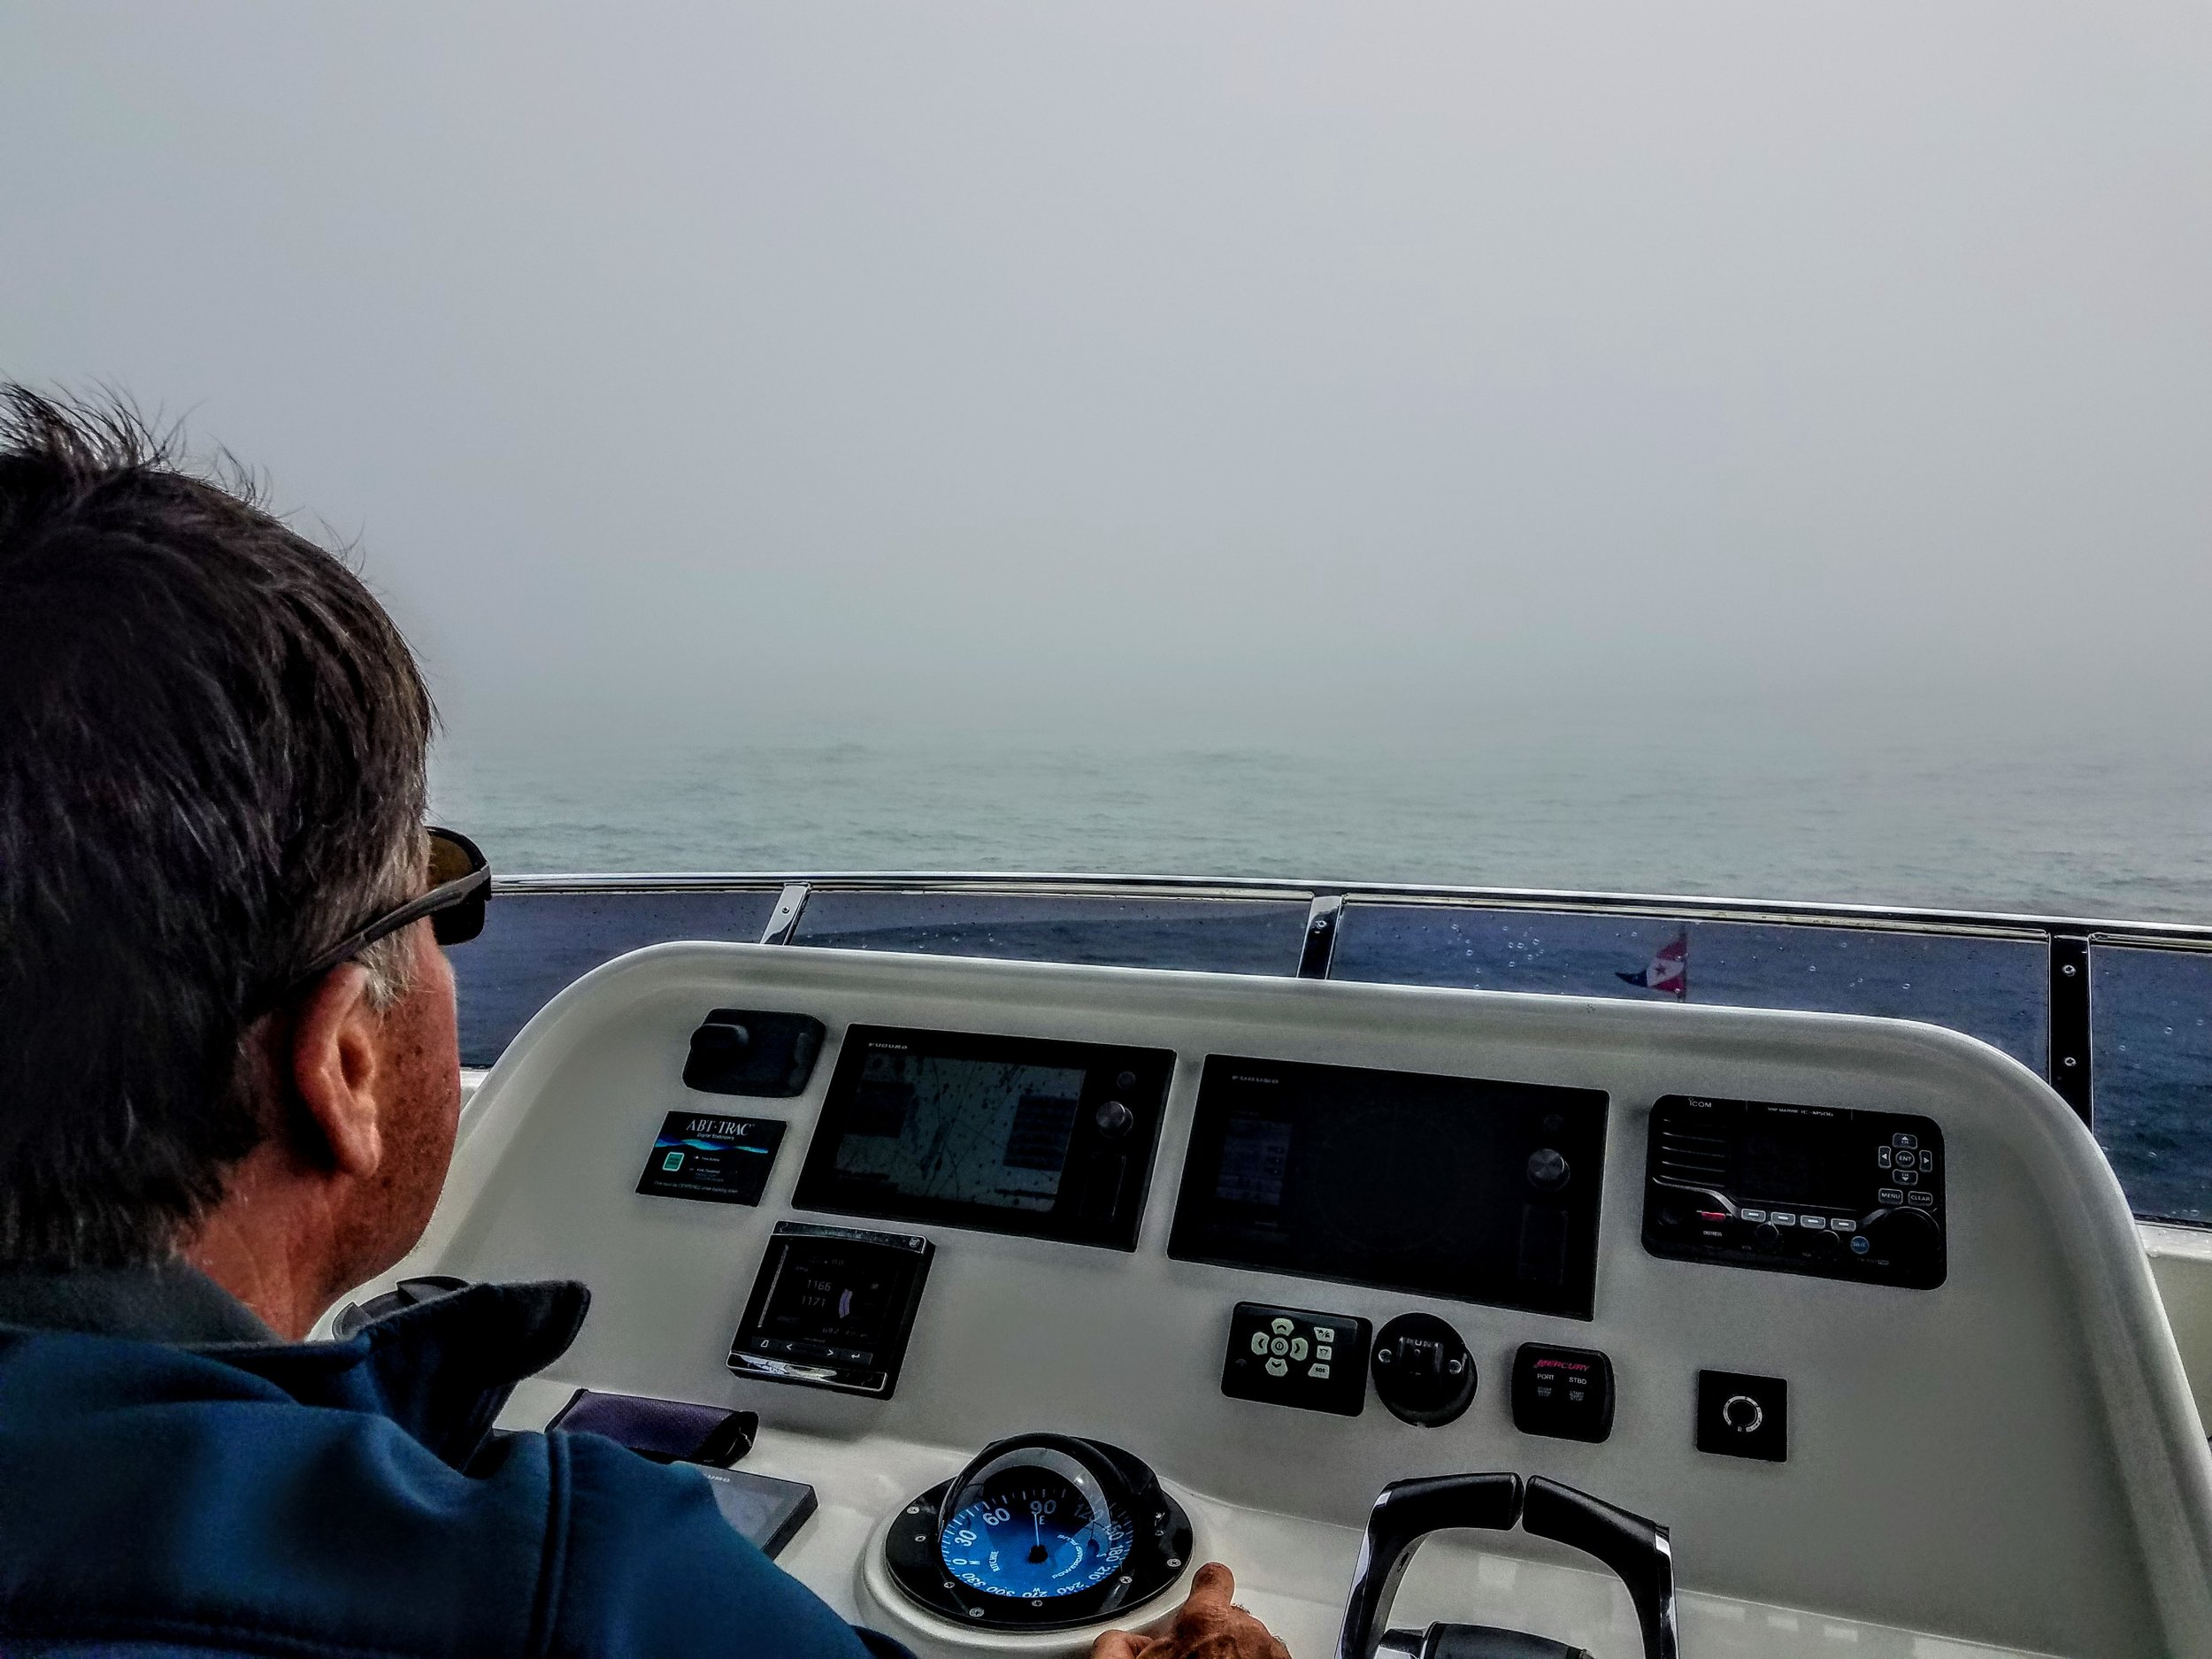 Our first 'down-to-the-deck' fog day. Conditions persisted for most of the day while we transited from Atlantic City, N.J. to the Manasquan River Inlet to Brielle, N.J.